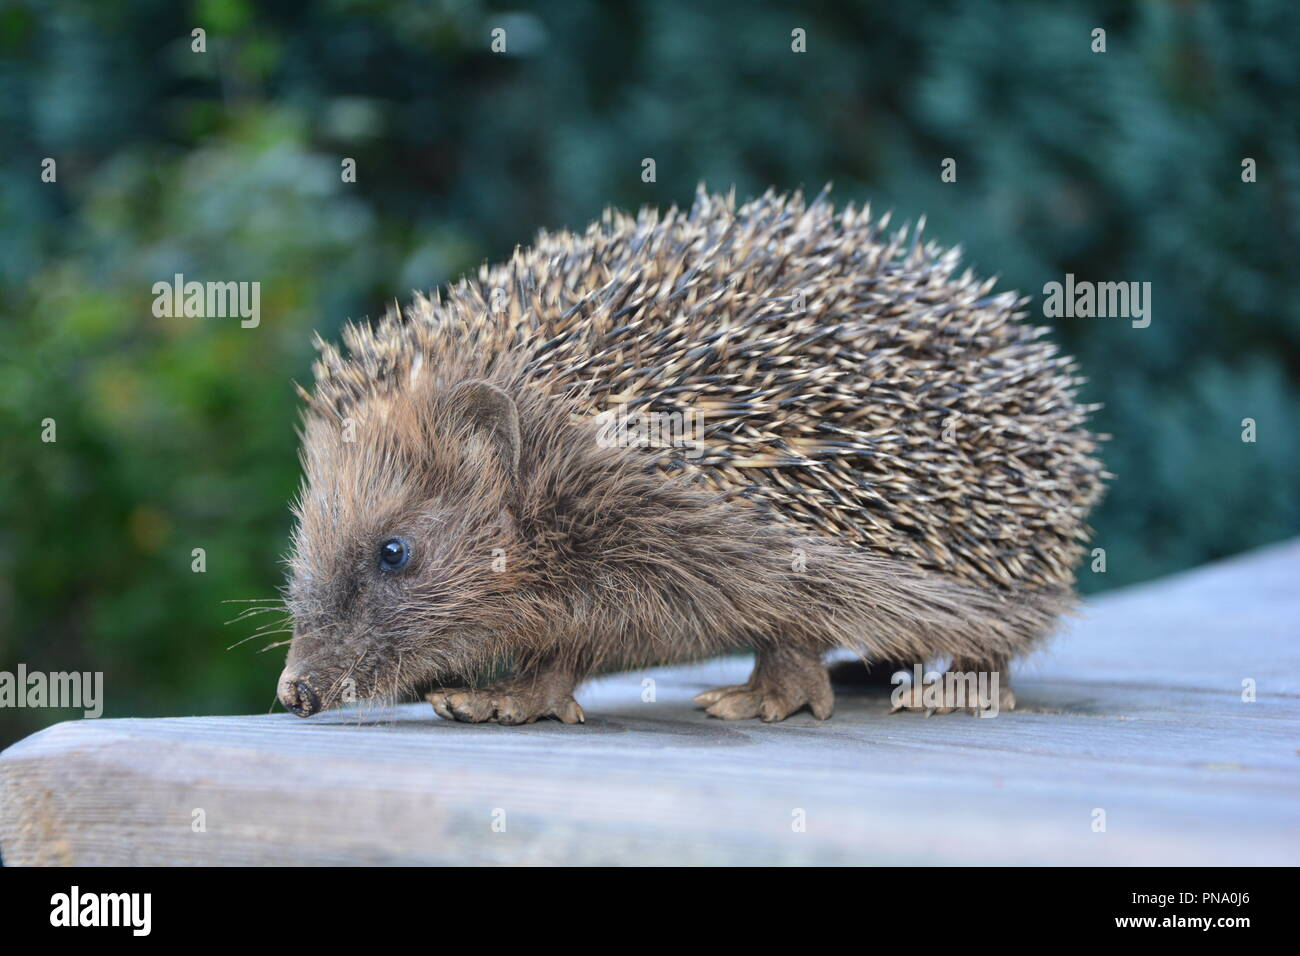 Cute hedgehog from the side on wood in front of green nature - Stock Image